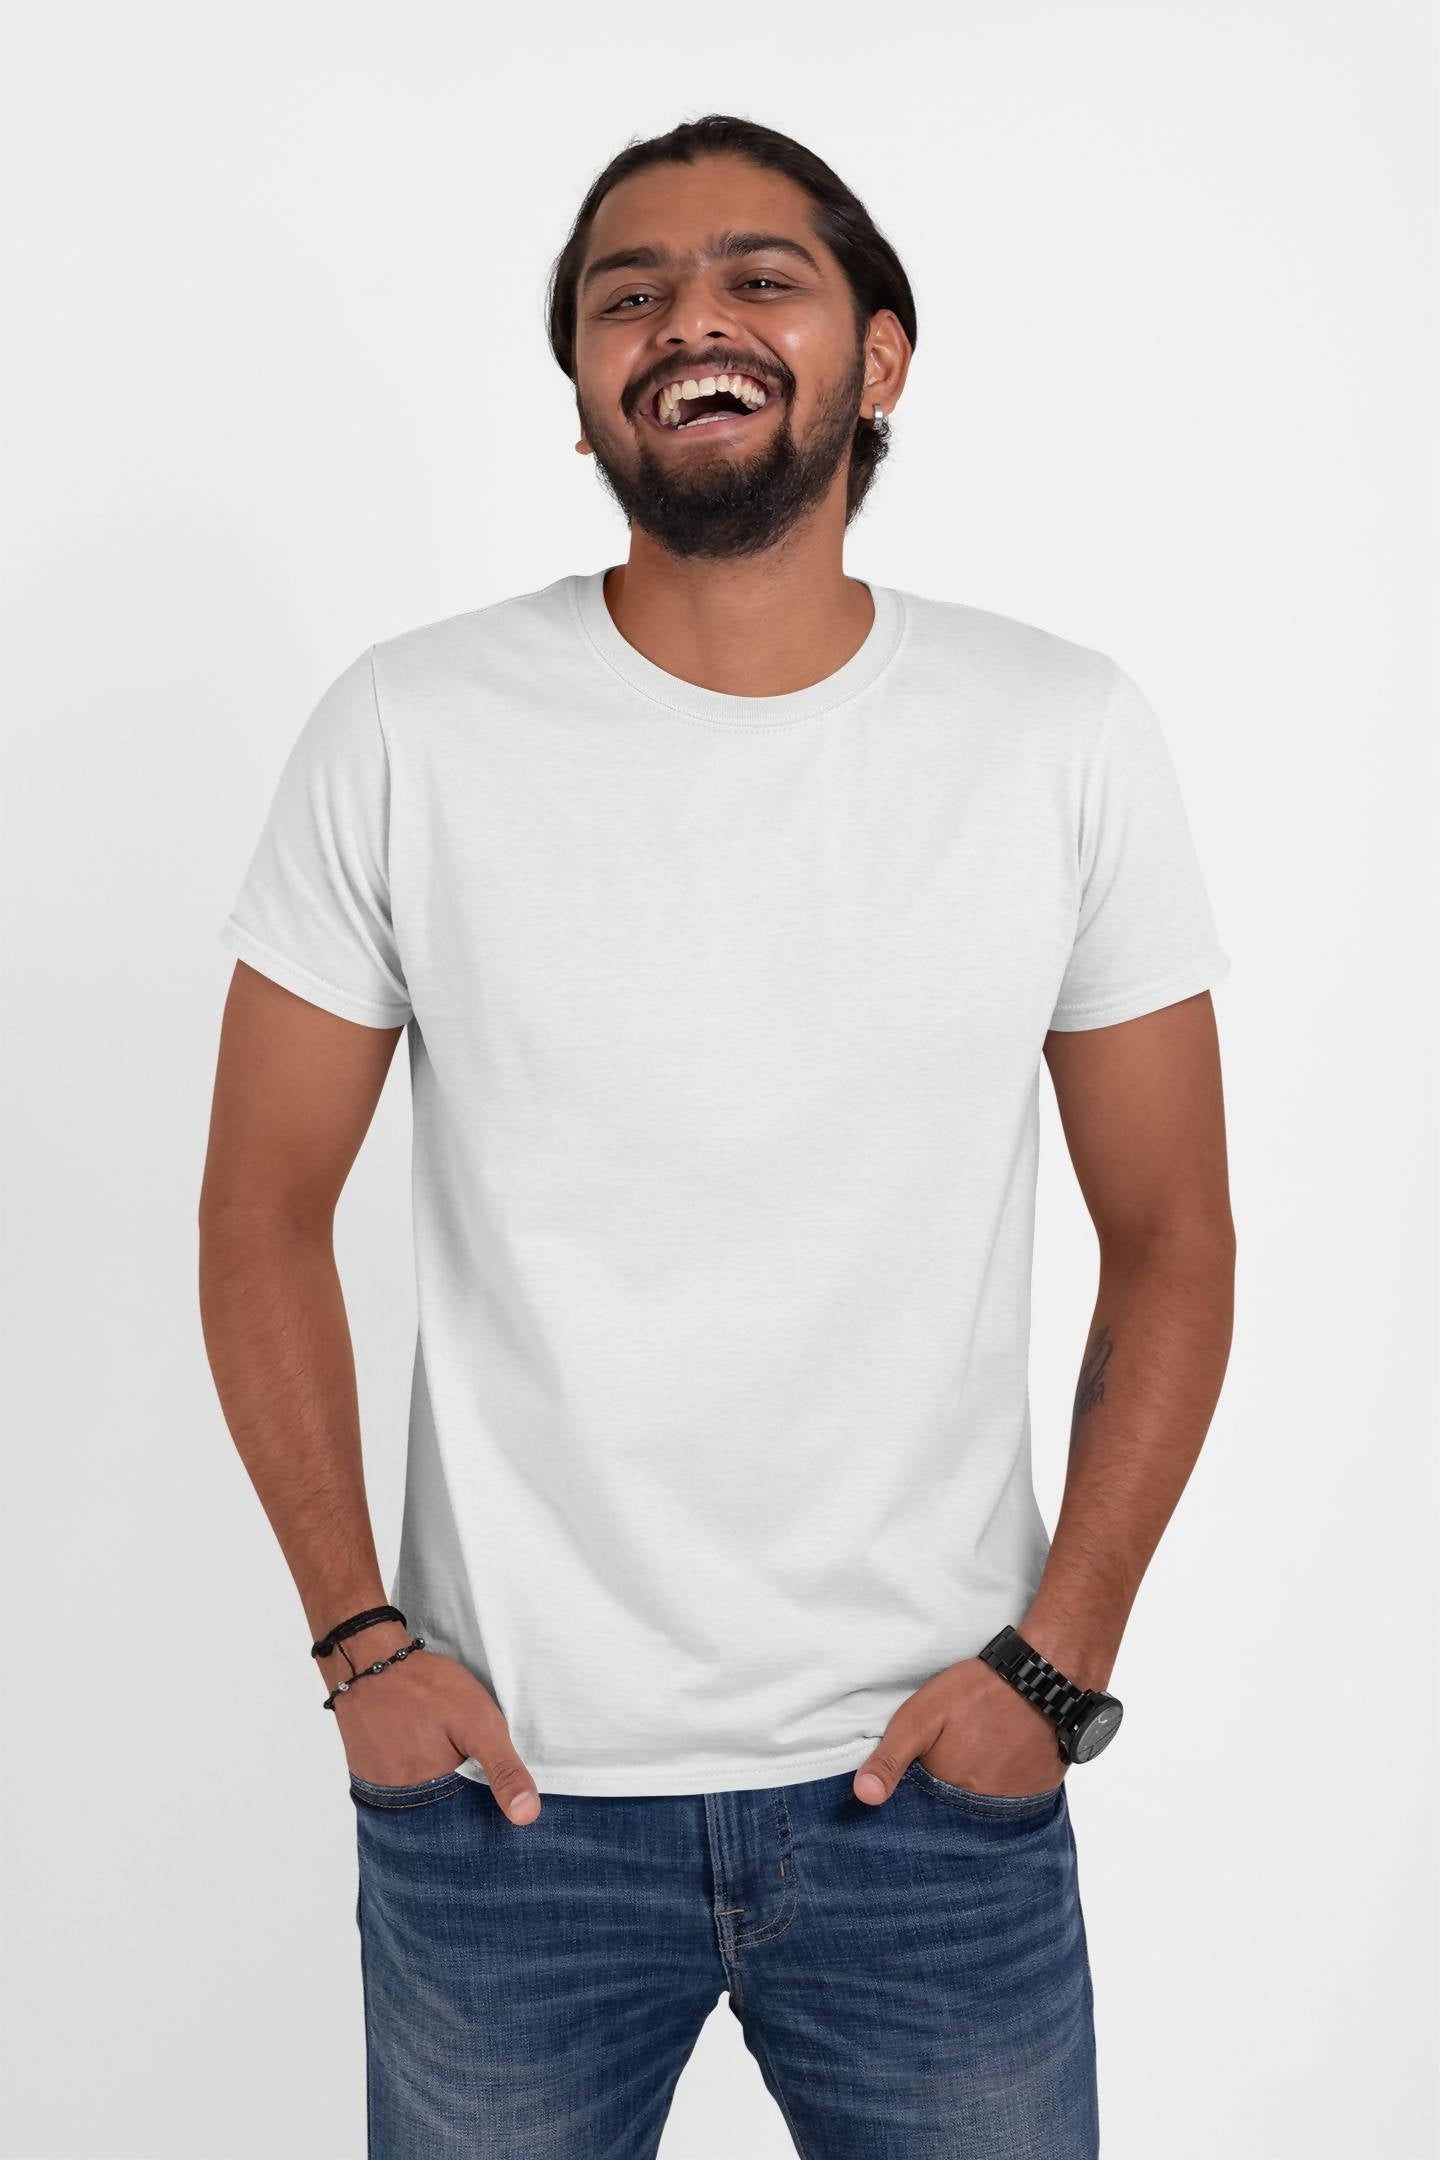 (White+Navy+Blue ) Bio Wash Cotton Half Sleeve Round Neck Plain T-shirt (Pack of 3)